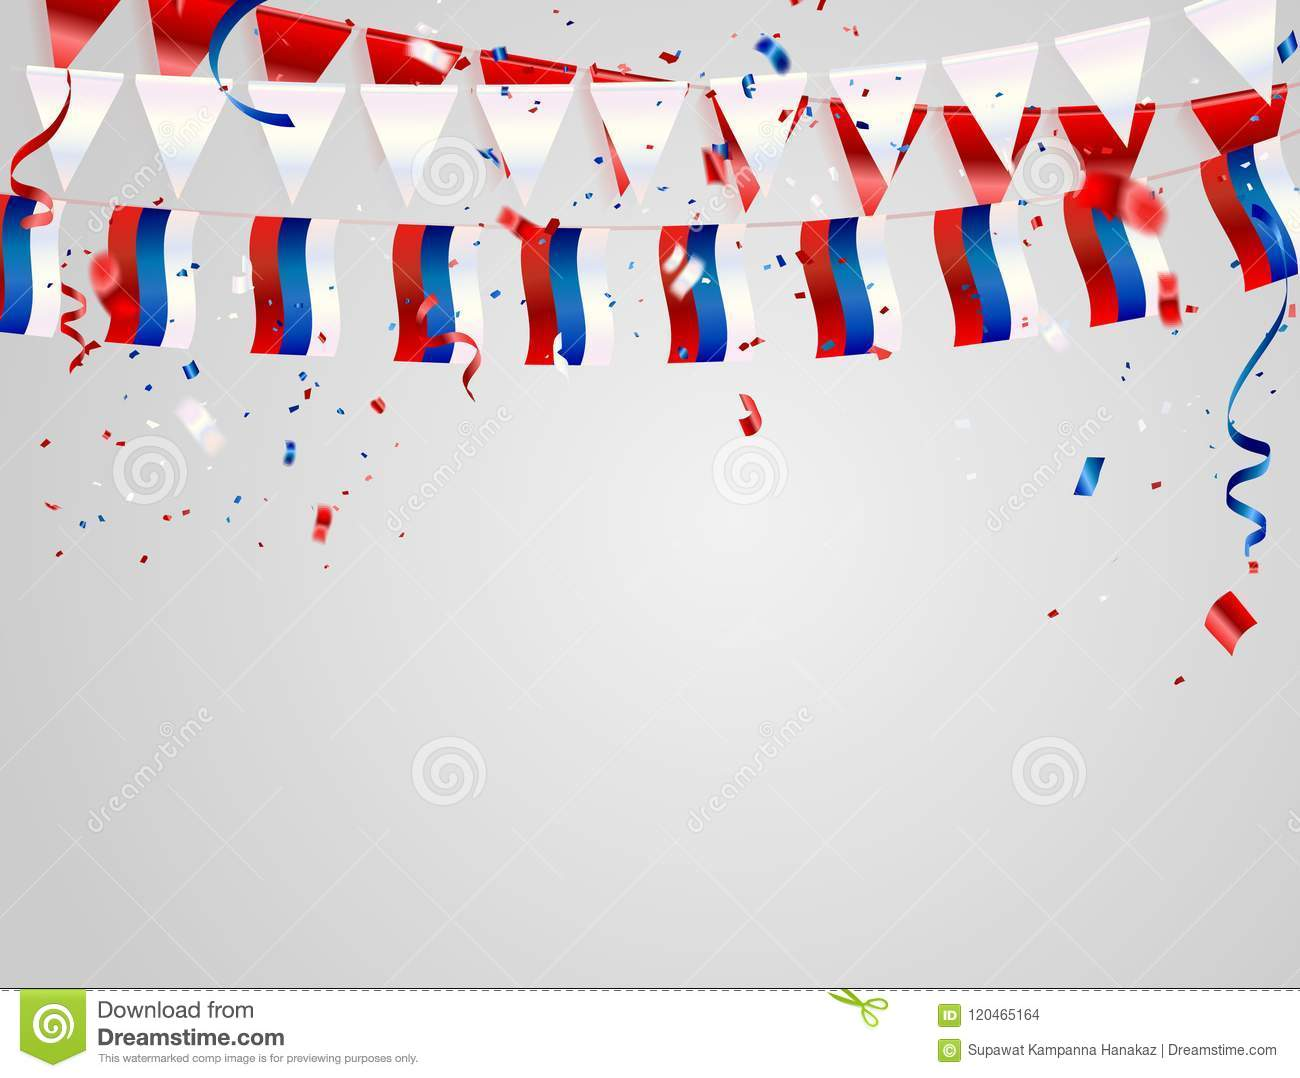 Russia Flags Celebration Background With Confetti And Red And Blue